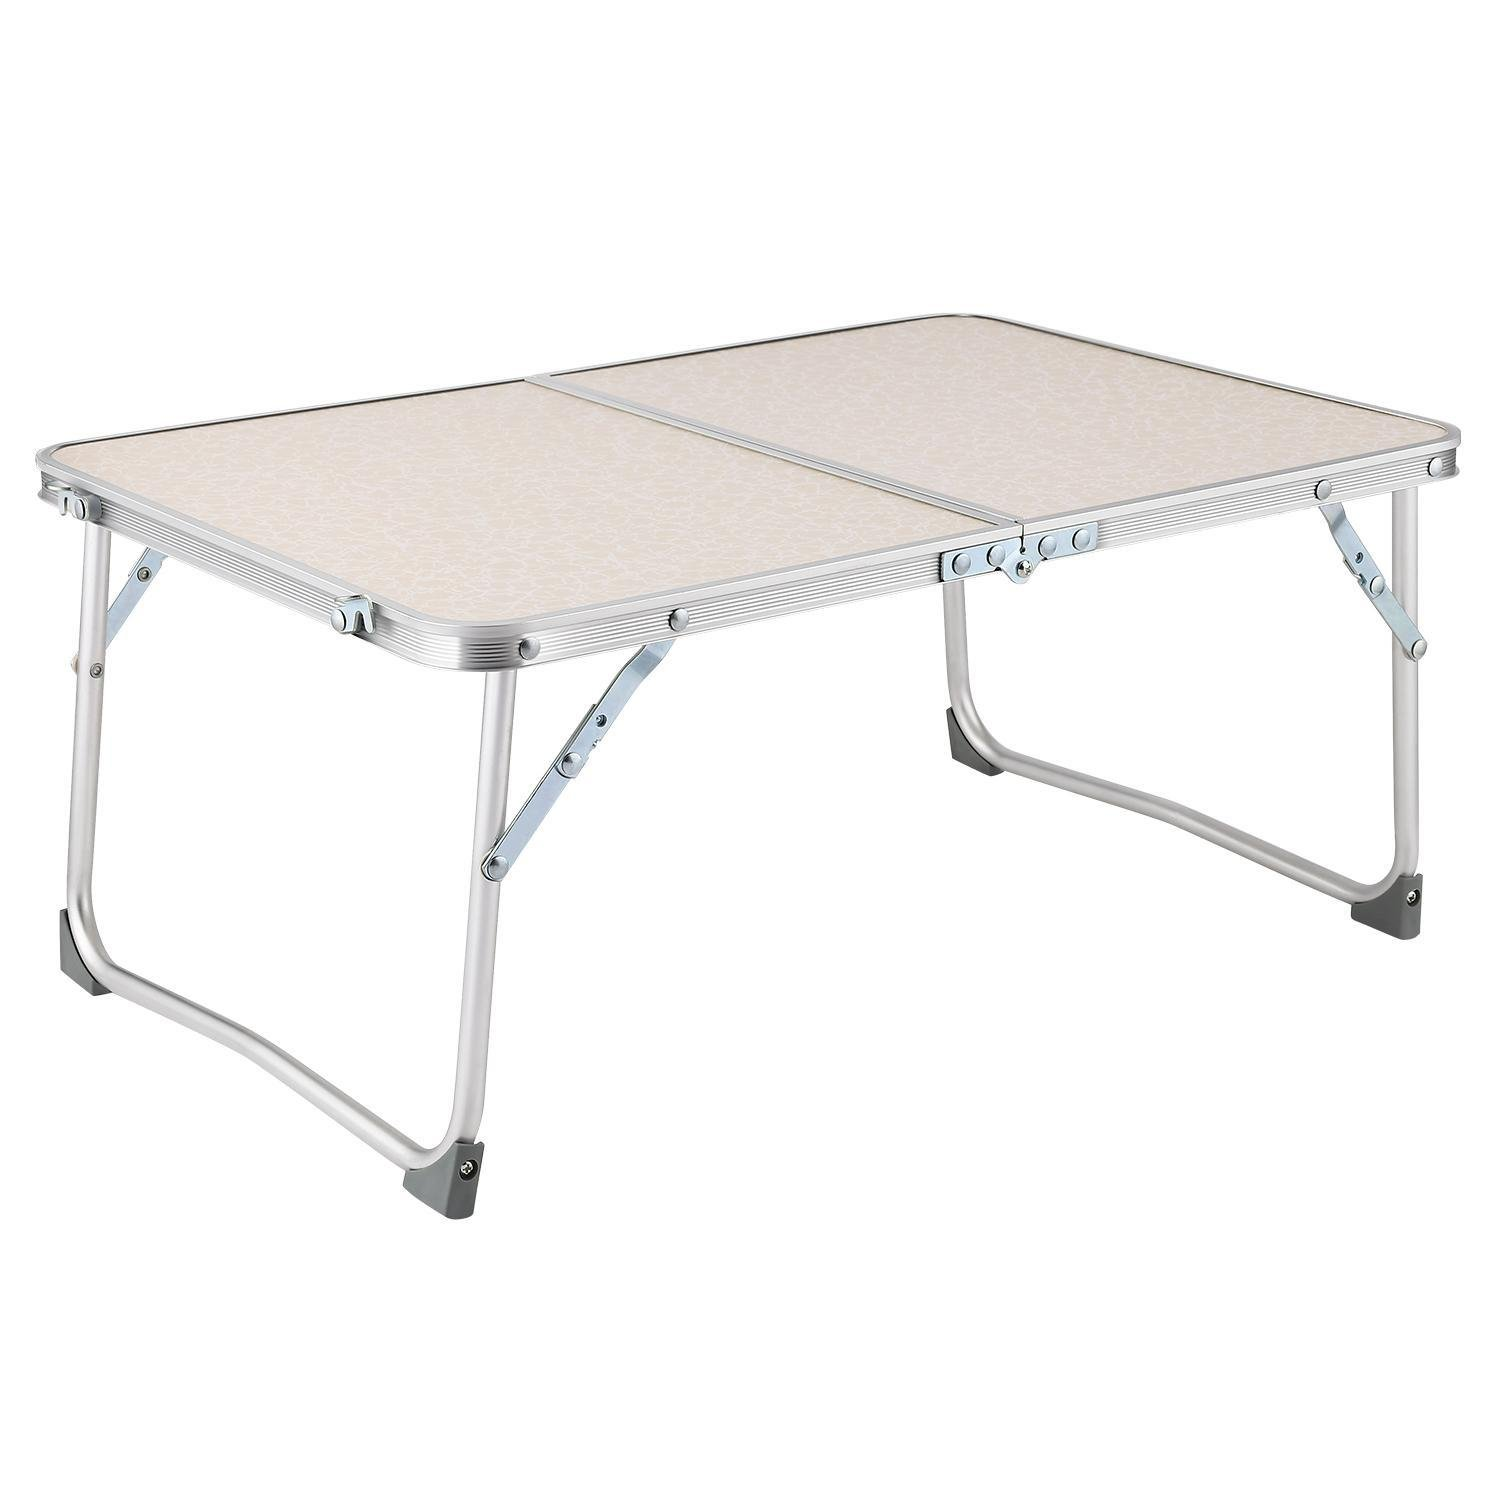 Lantusi Aluminum Camping Folding Table with Carrying Handle, Folding Utility Table, Indoor Outdoor Use Patio Camp Party Table, US STOCK (White)